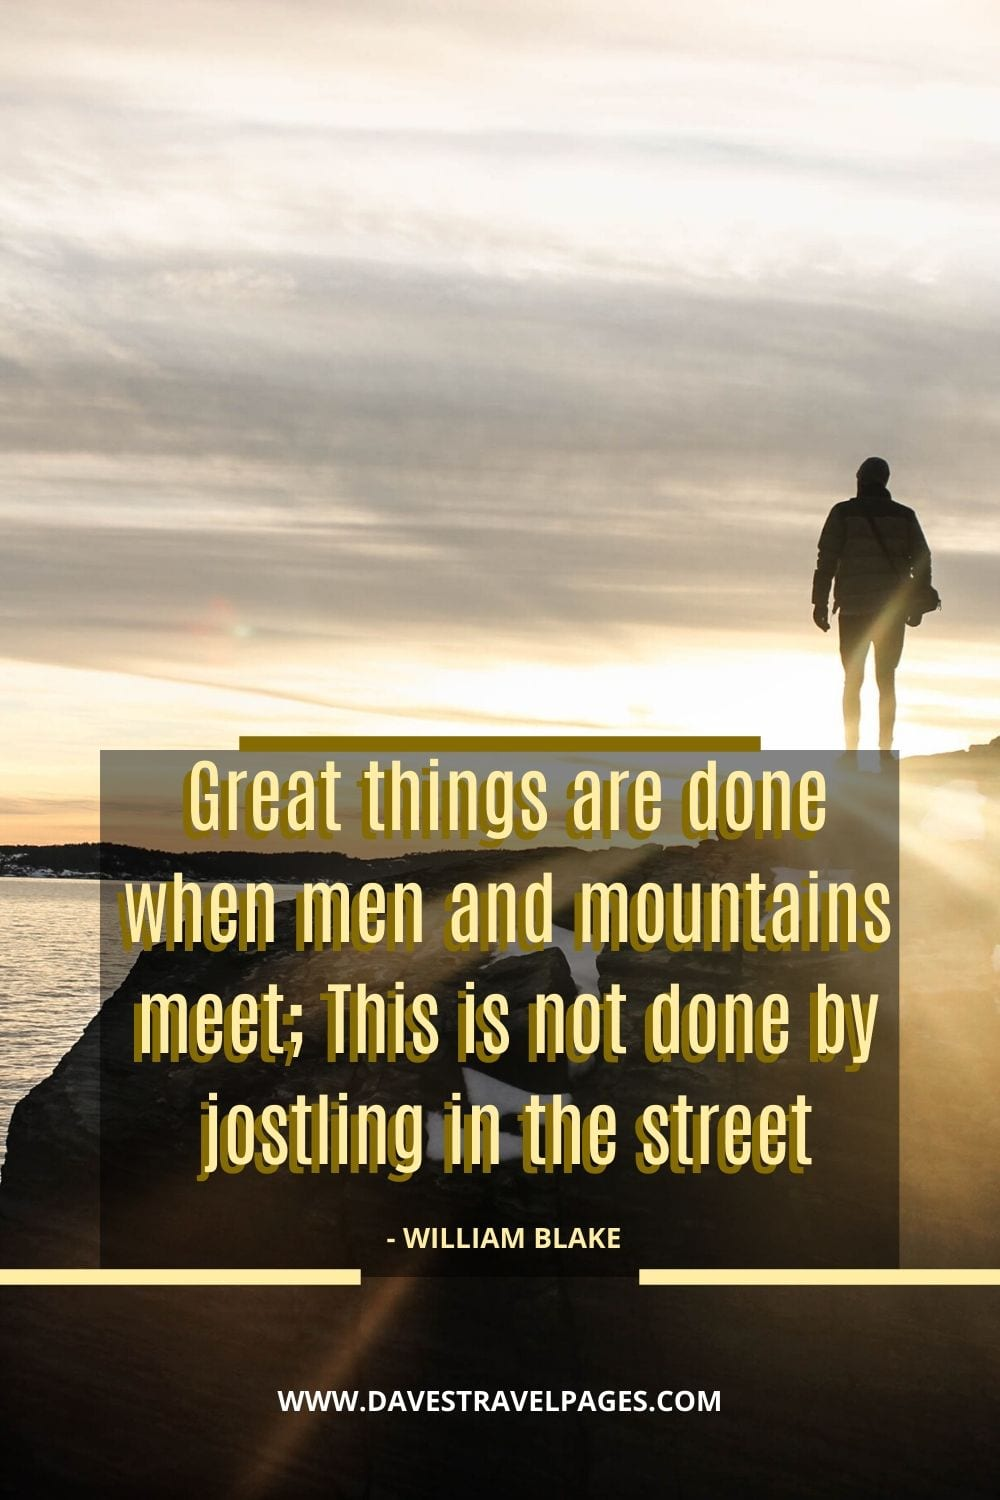 Outdoor's Quotes: Great things are done when men and mountains meet; This is not done by jostling in the street - William Blake